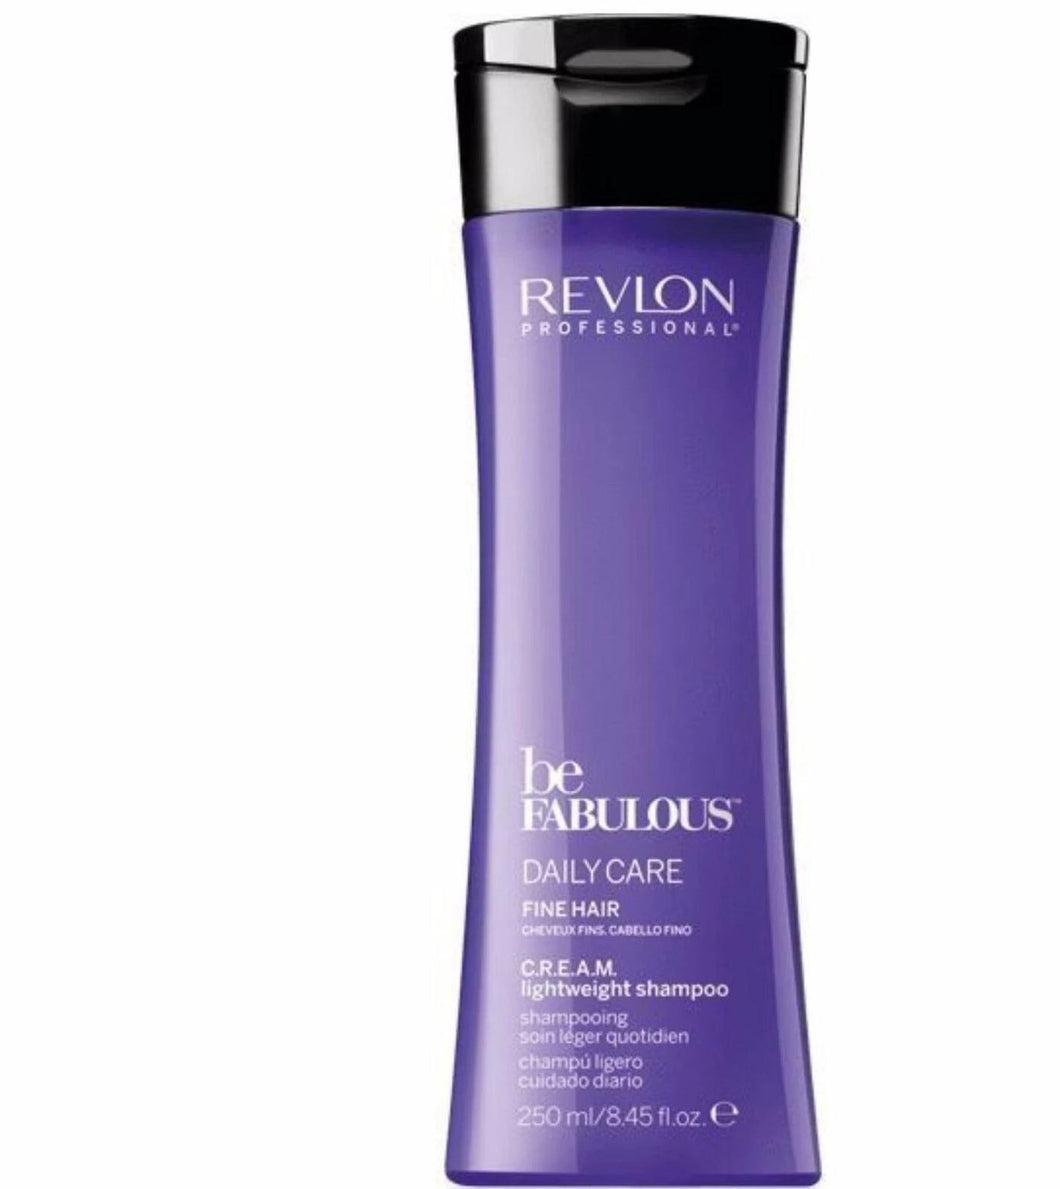 iaahhaircare,Revlon Professional Be Fabulous Daily Care Fine Shampoo C.R.E.A.M,Shampoos & Conditioners,Revlon